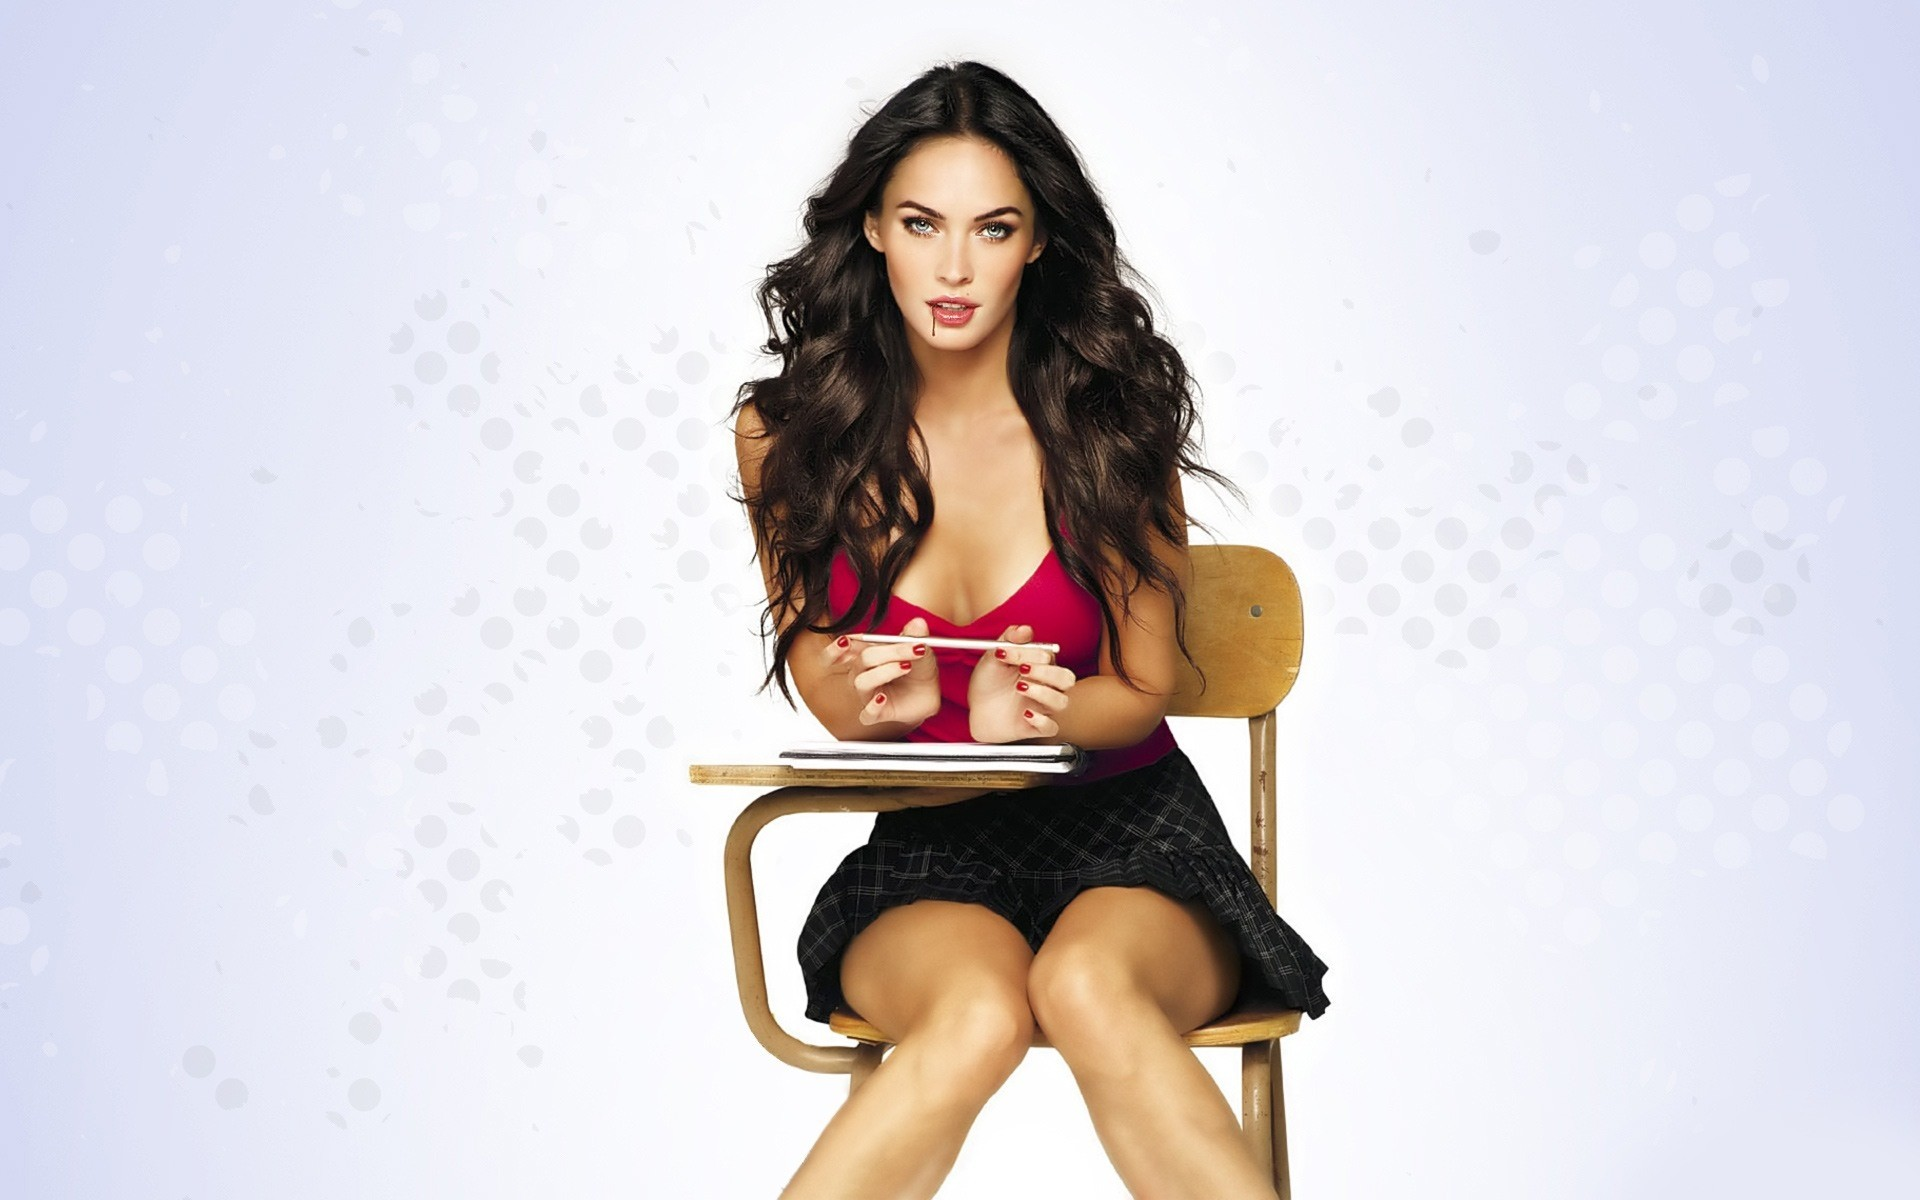 1920x1200 100 best Megan Fox images on Pinterest | Foxes, Megan fox style and  Beautiful people